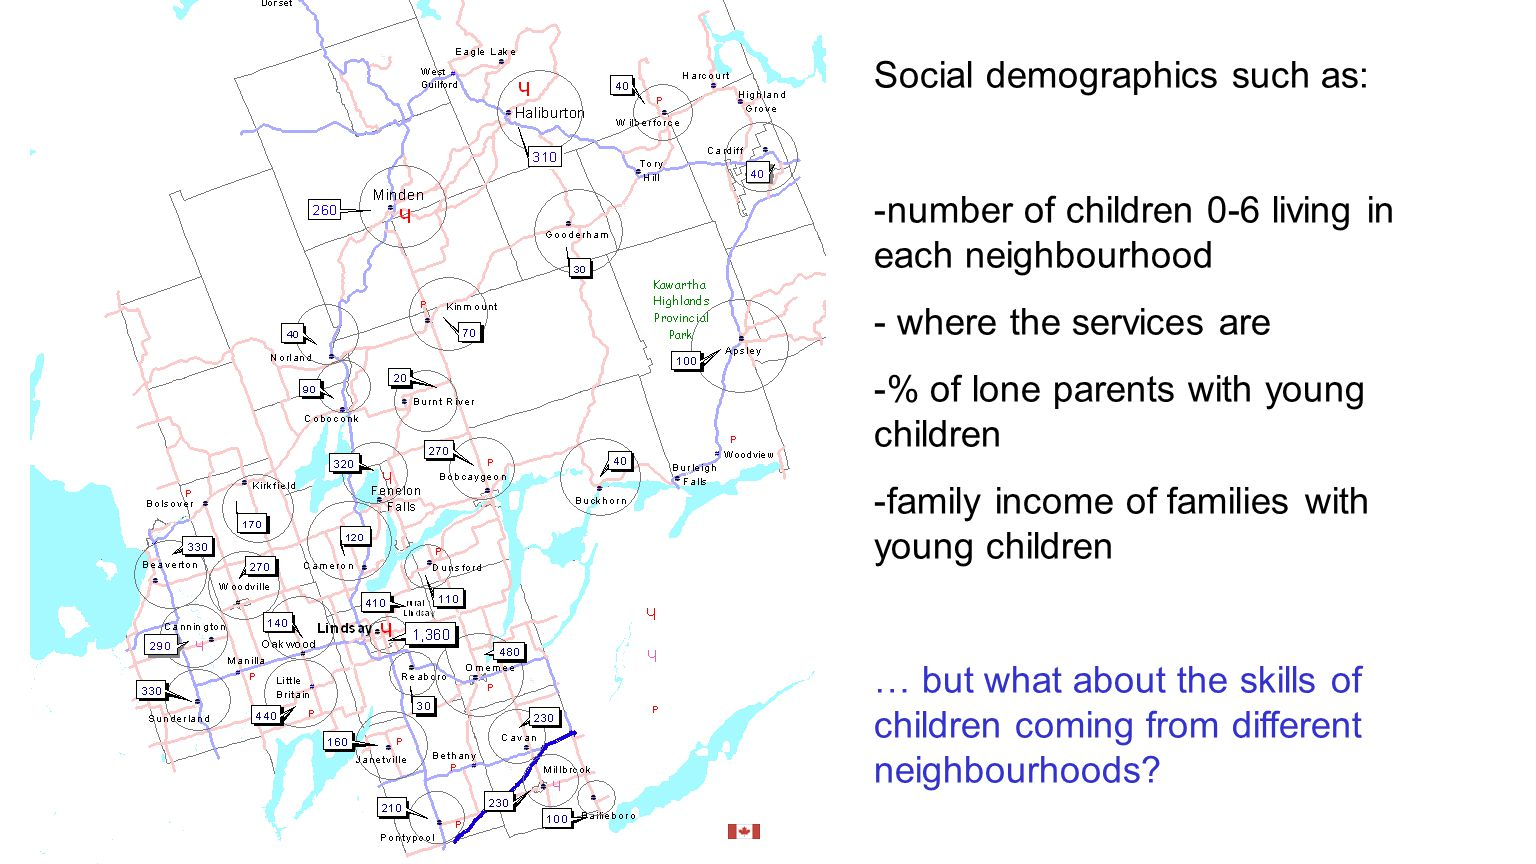 Social demographics such as: -number of children 0-6 living in each neighbourhood - where the services are -% of lone parents with young children -family income of families with young children … but what about the skills of children coming from different neighbourhoods